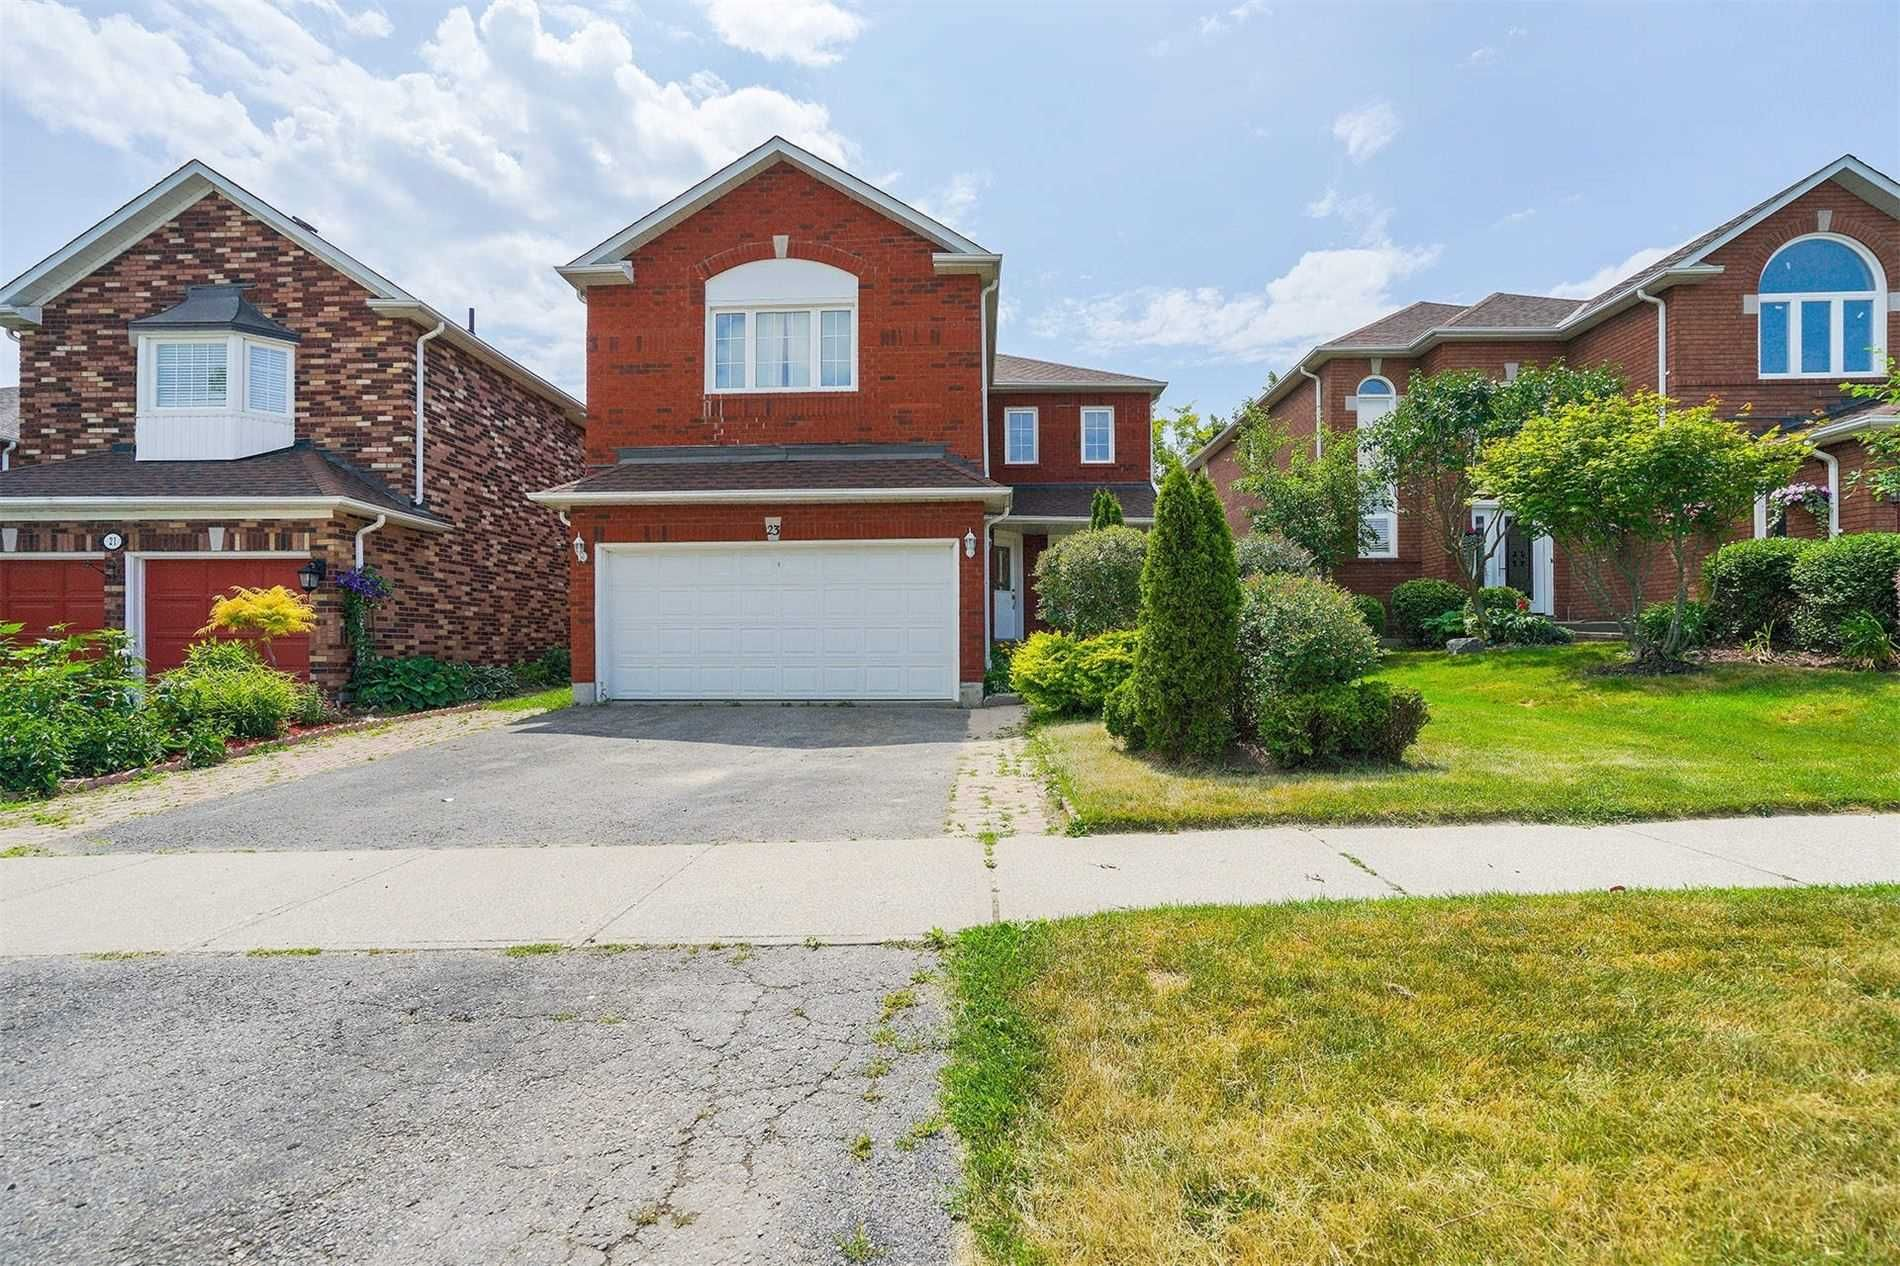 Main Photo: 23 W Kerrison Drive in Ajax: Central House (2-Storey) for sale : MLS®# E5089062